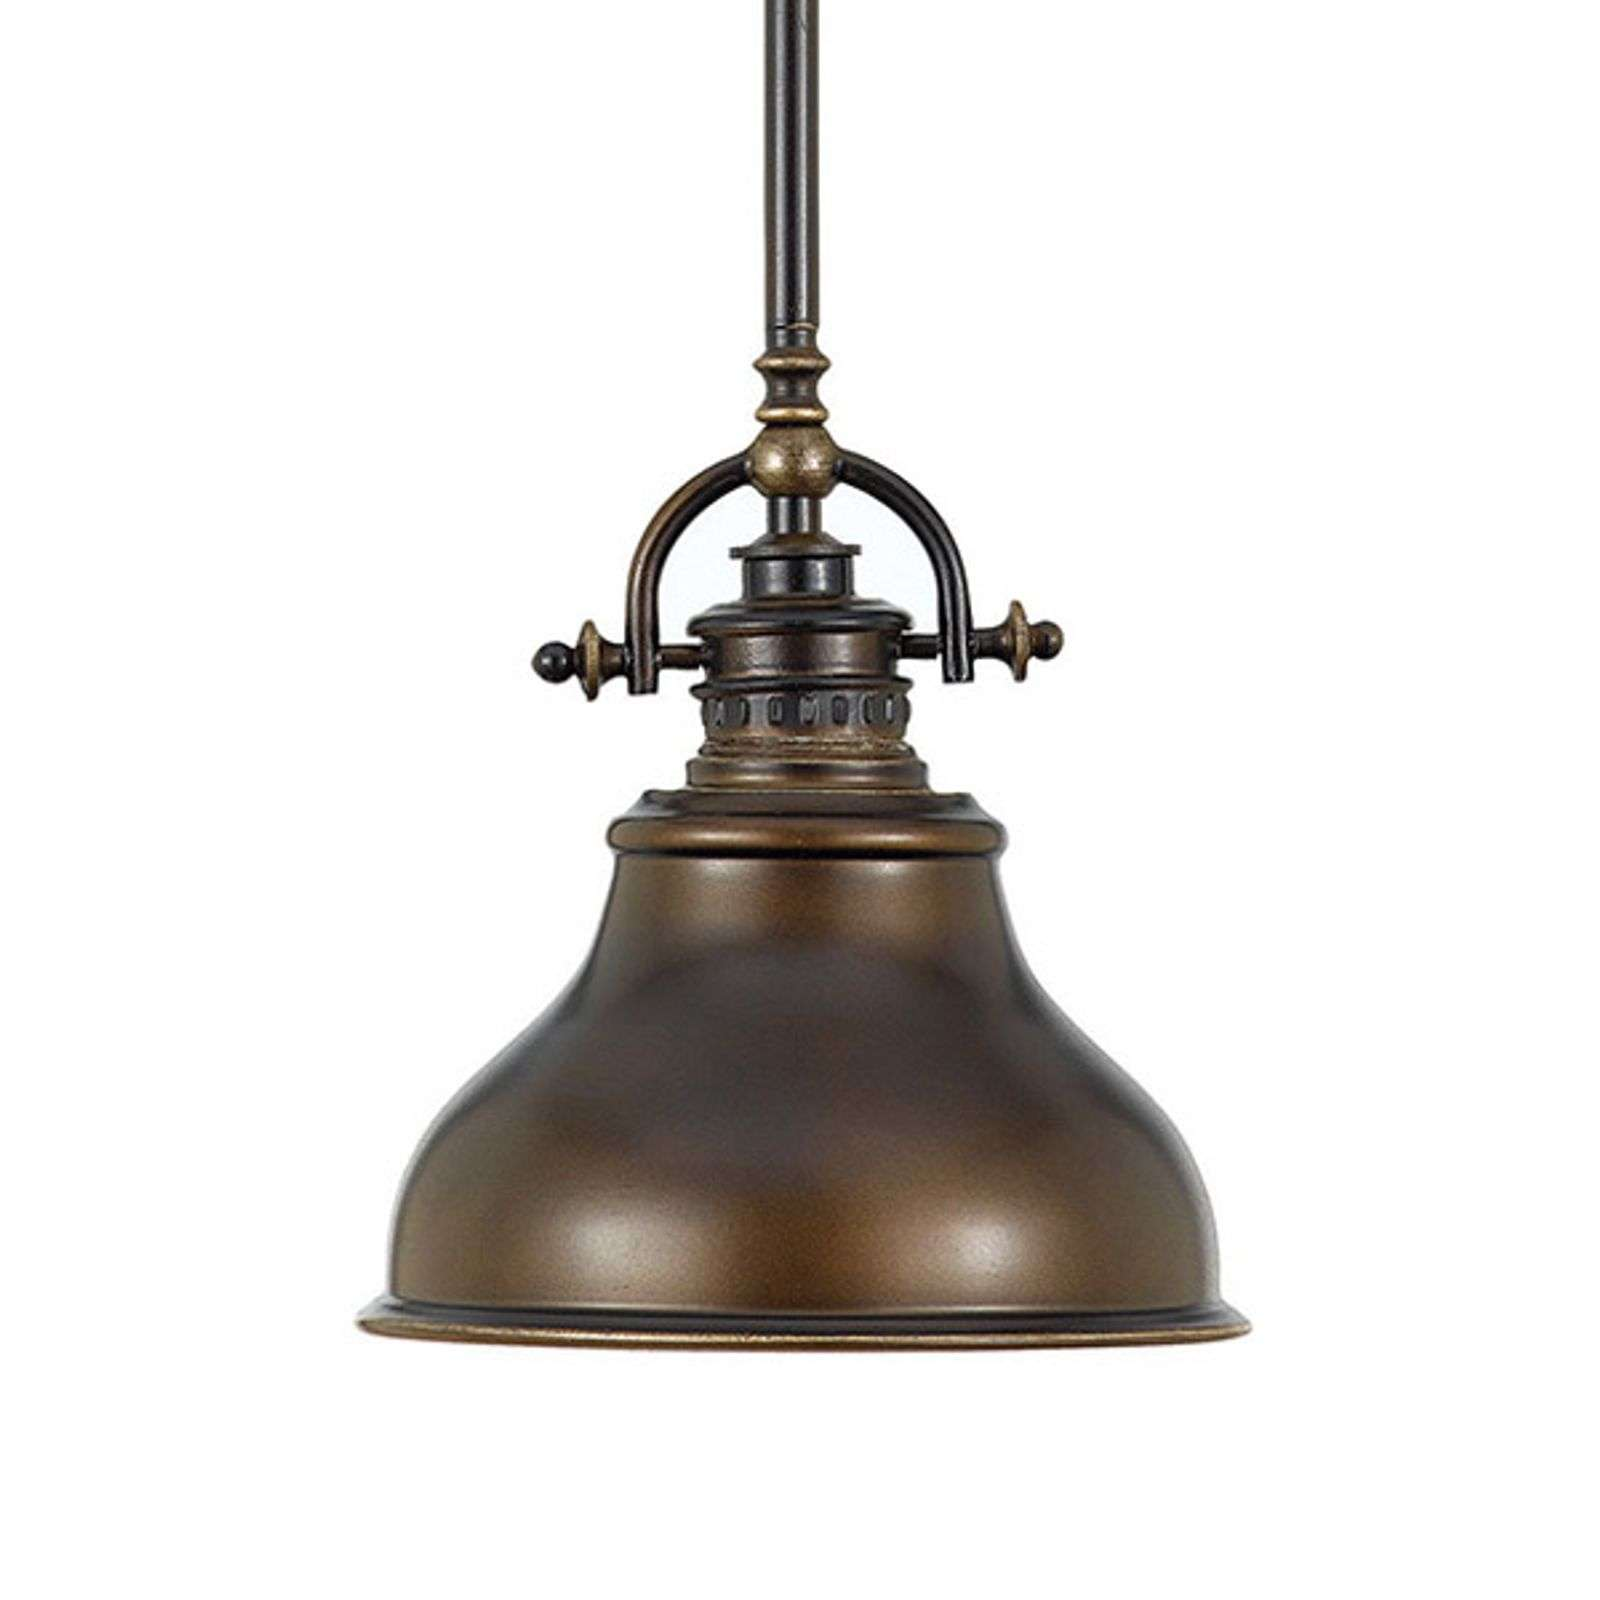 Suspension Emery style industriel bronze Ø 20,3 cm